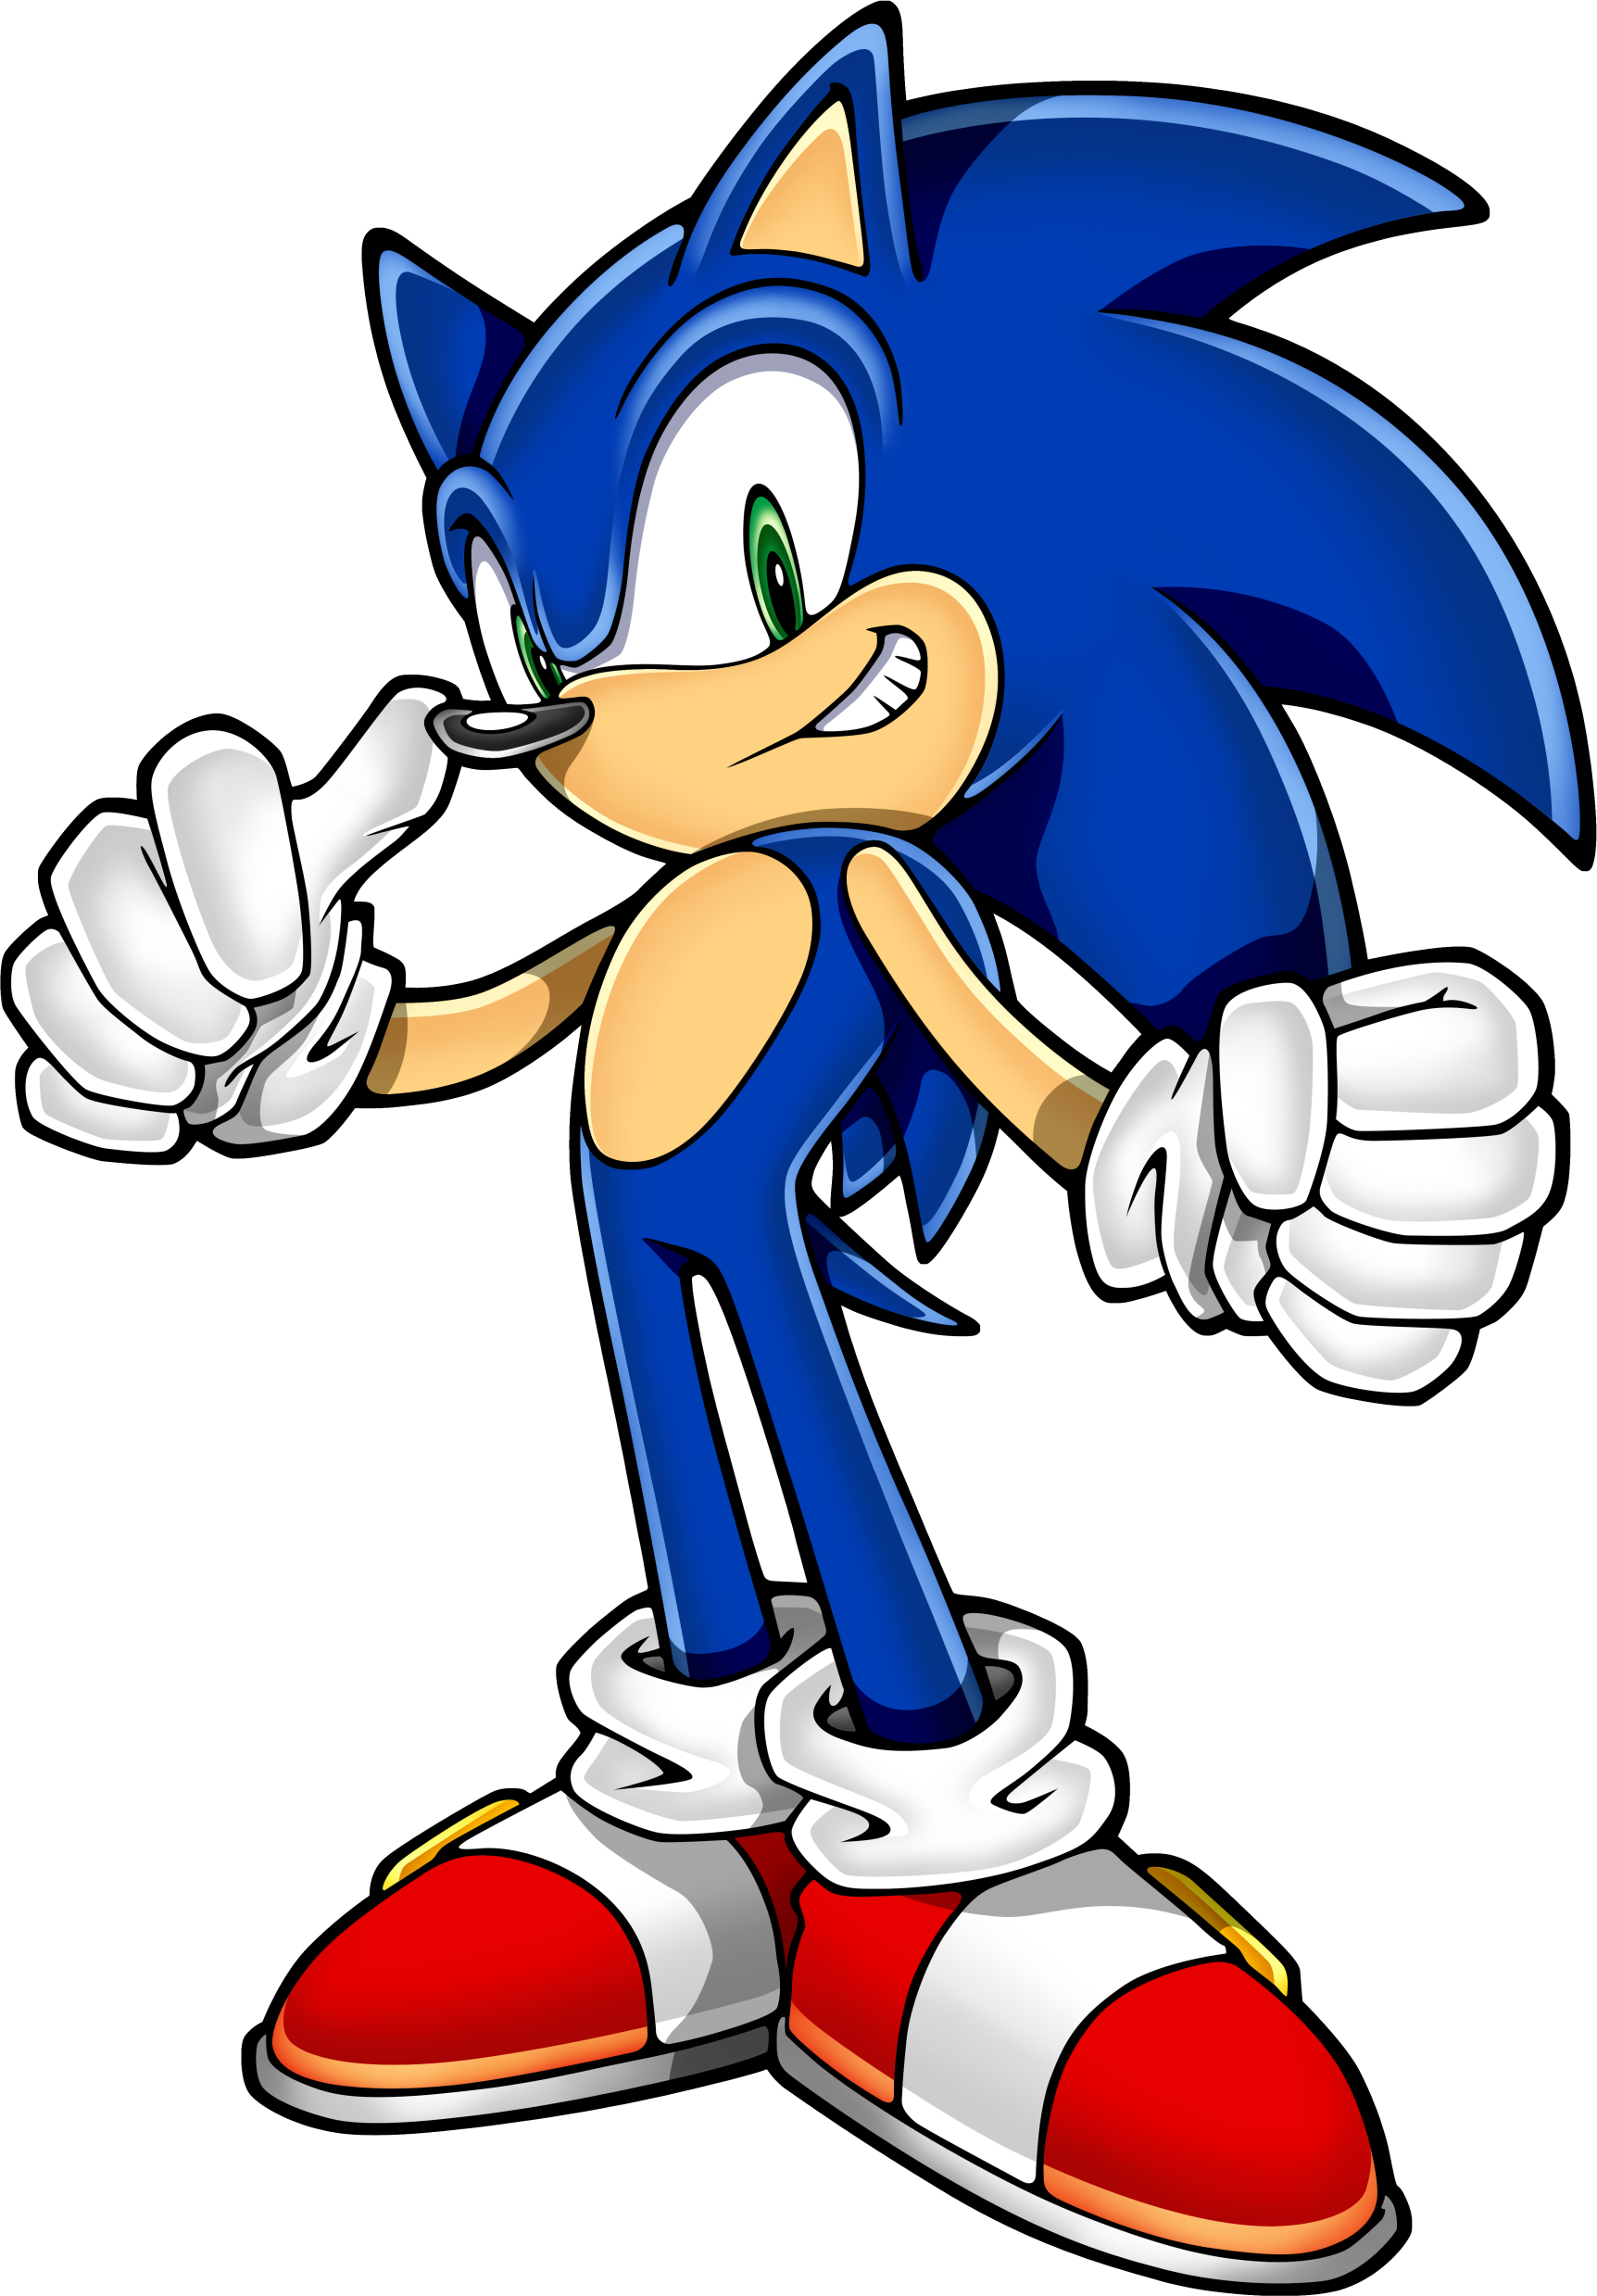 Sonic the hedgehog png. Image shipping wiki fandom